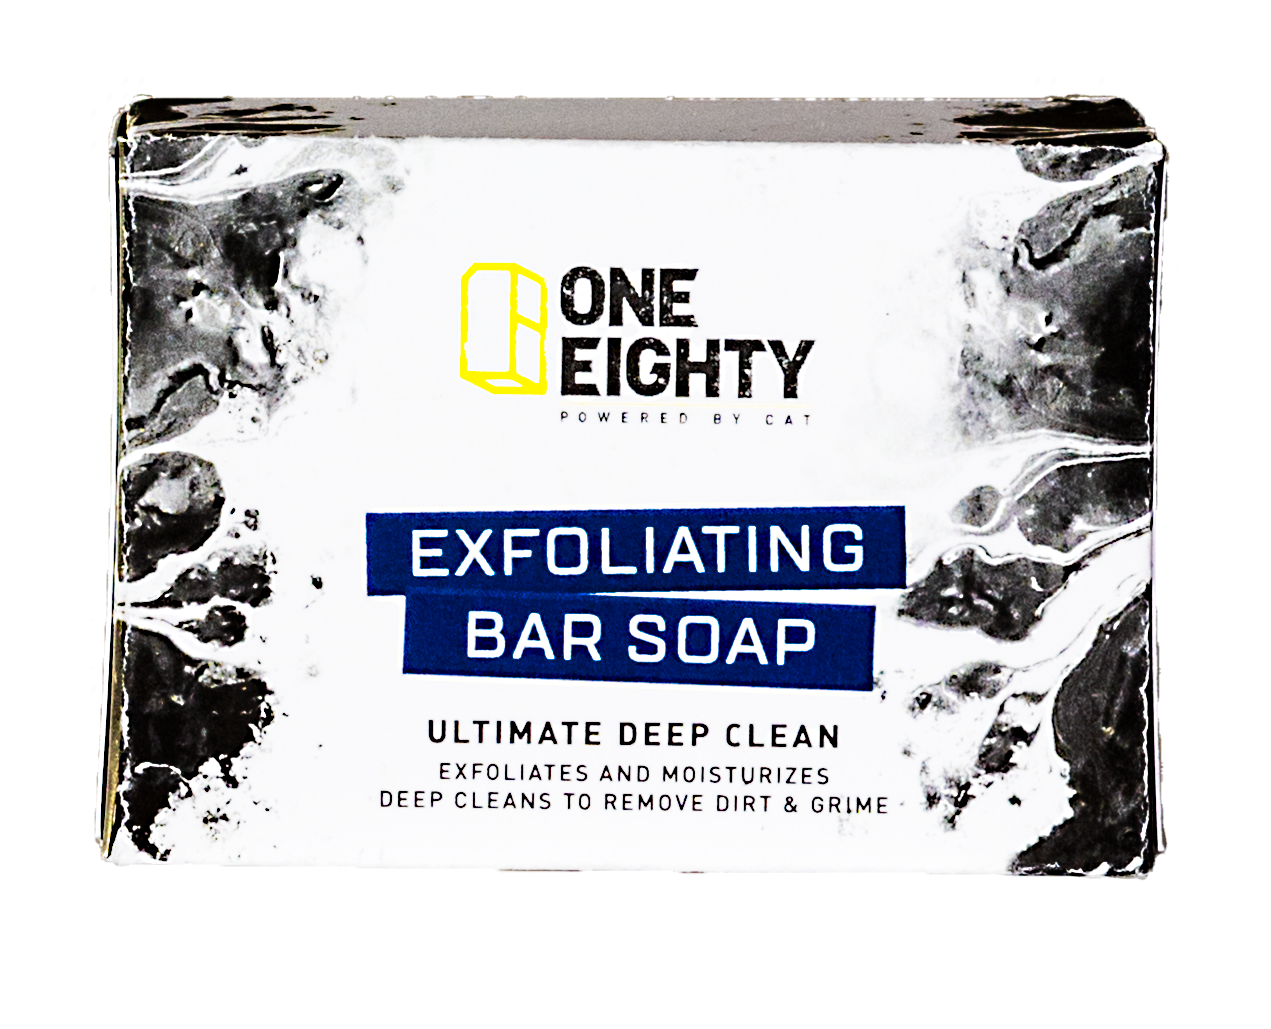 Cat One Eighty Exfoliating Bar Soap.png